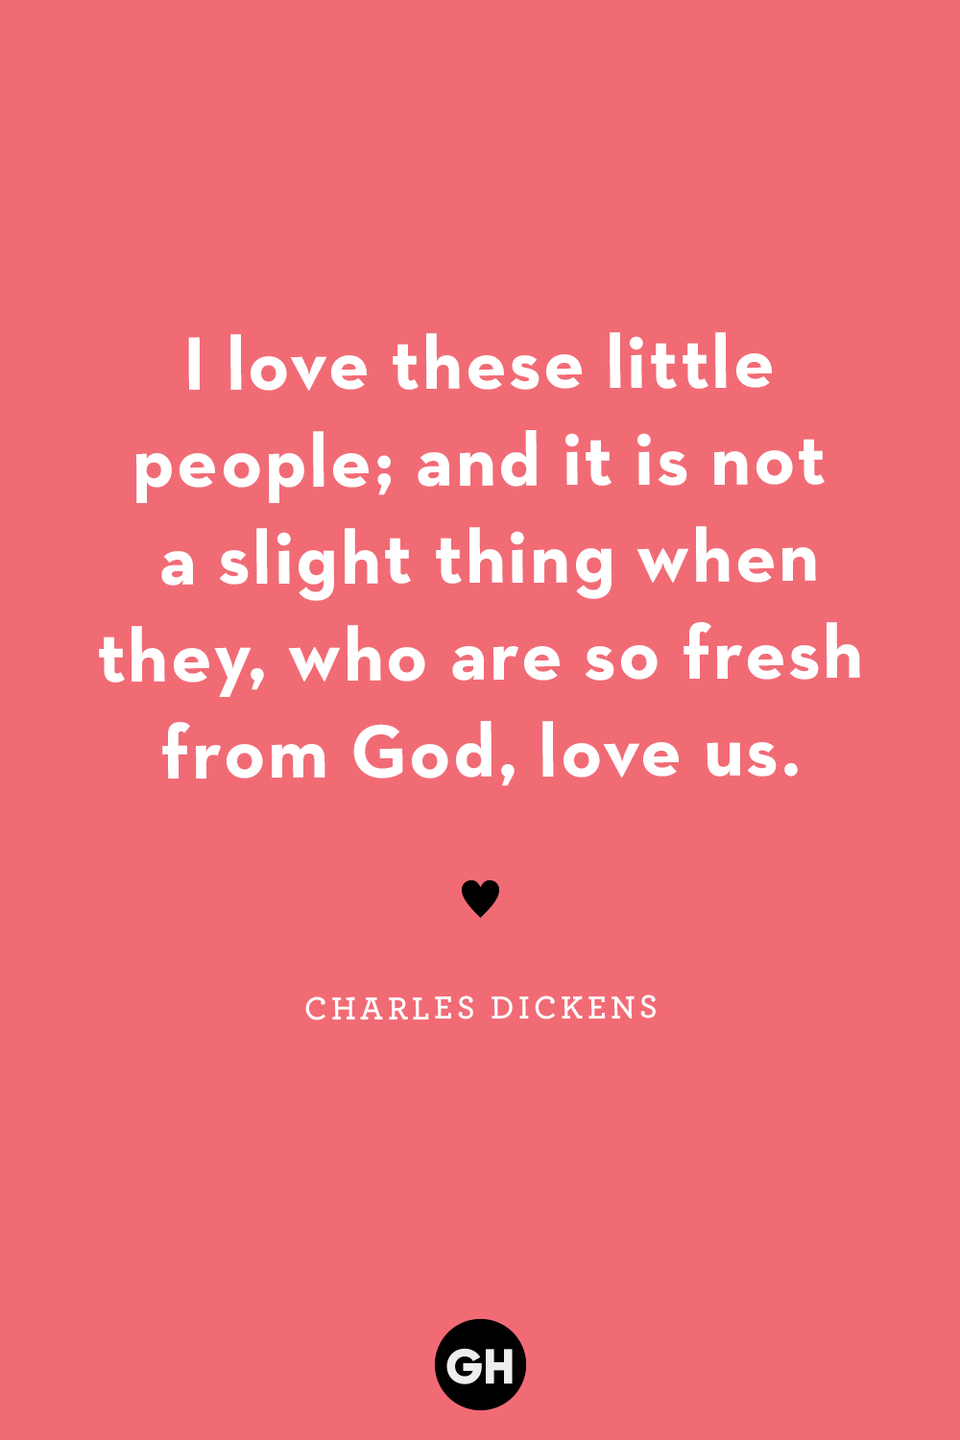 <p>I love these little people; and it is not a slight thing when they, who are so fresh from God, love us.</p>